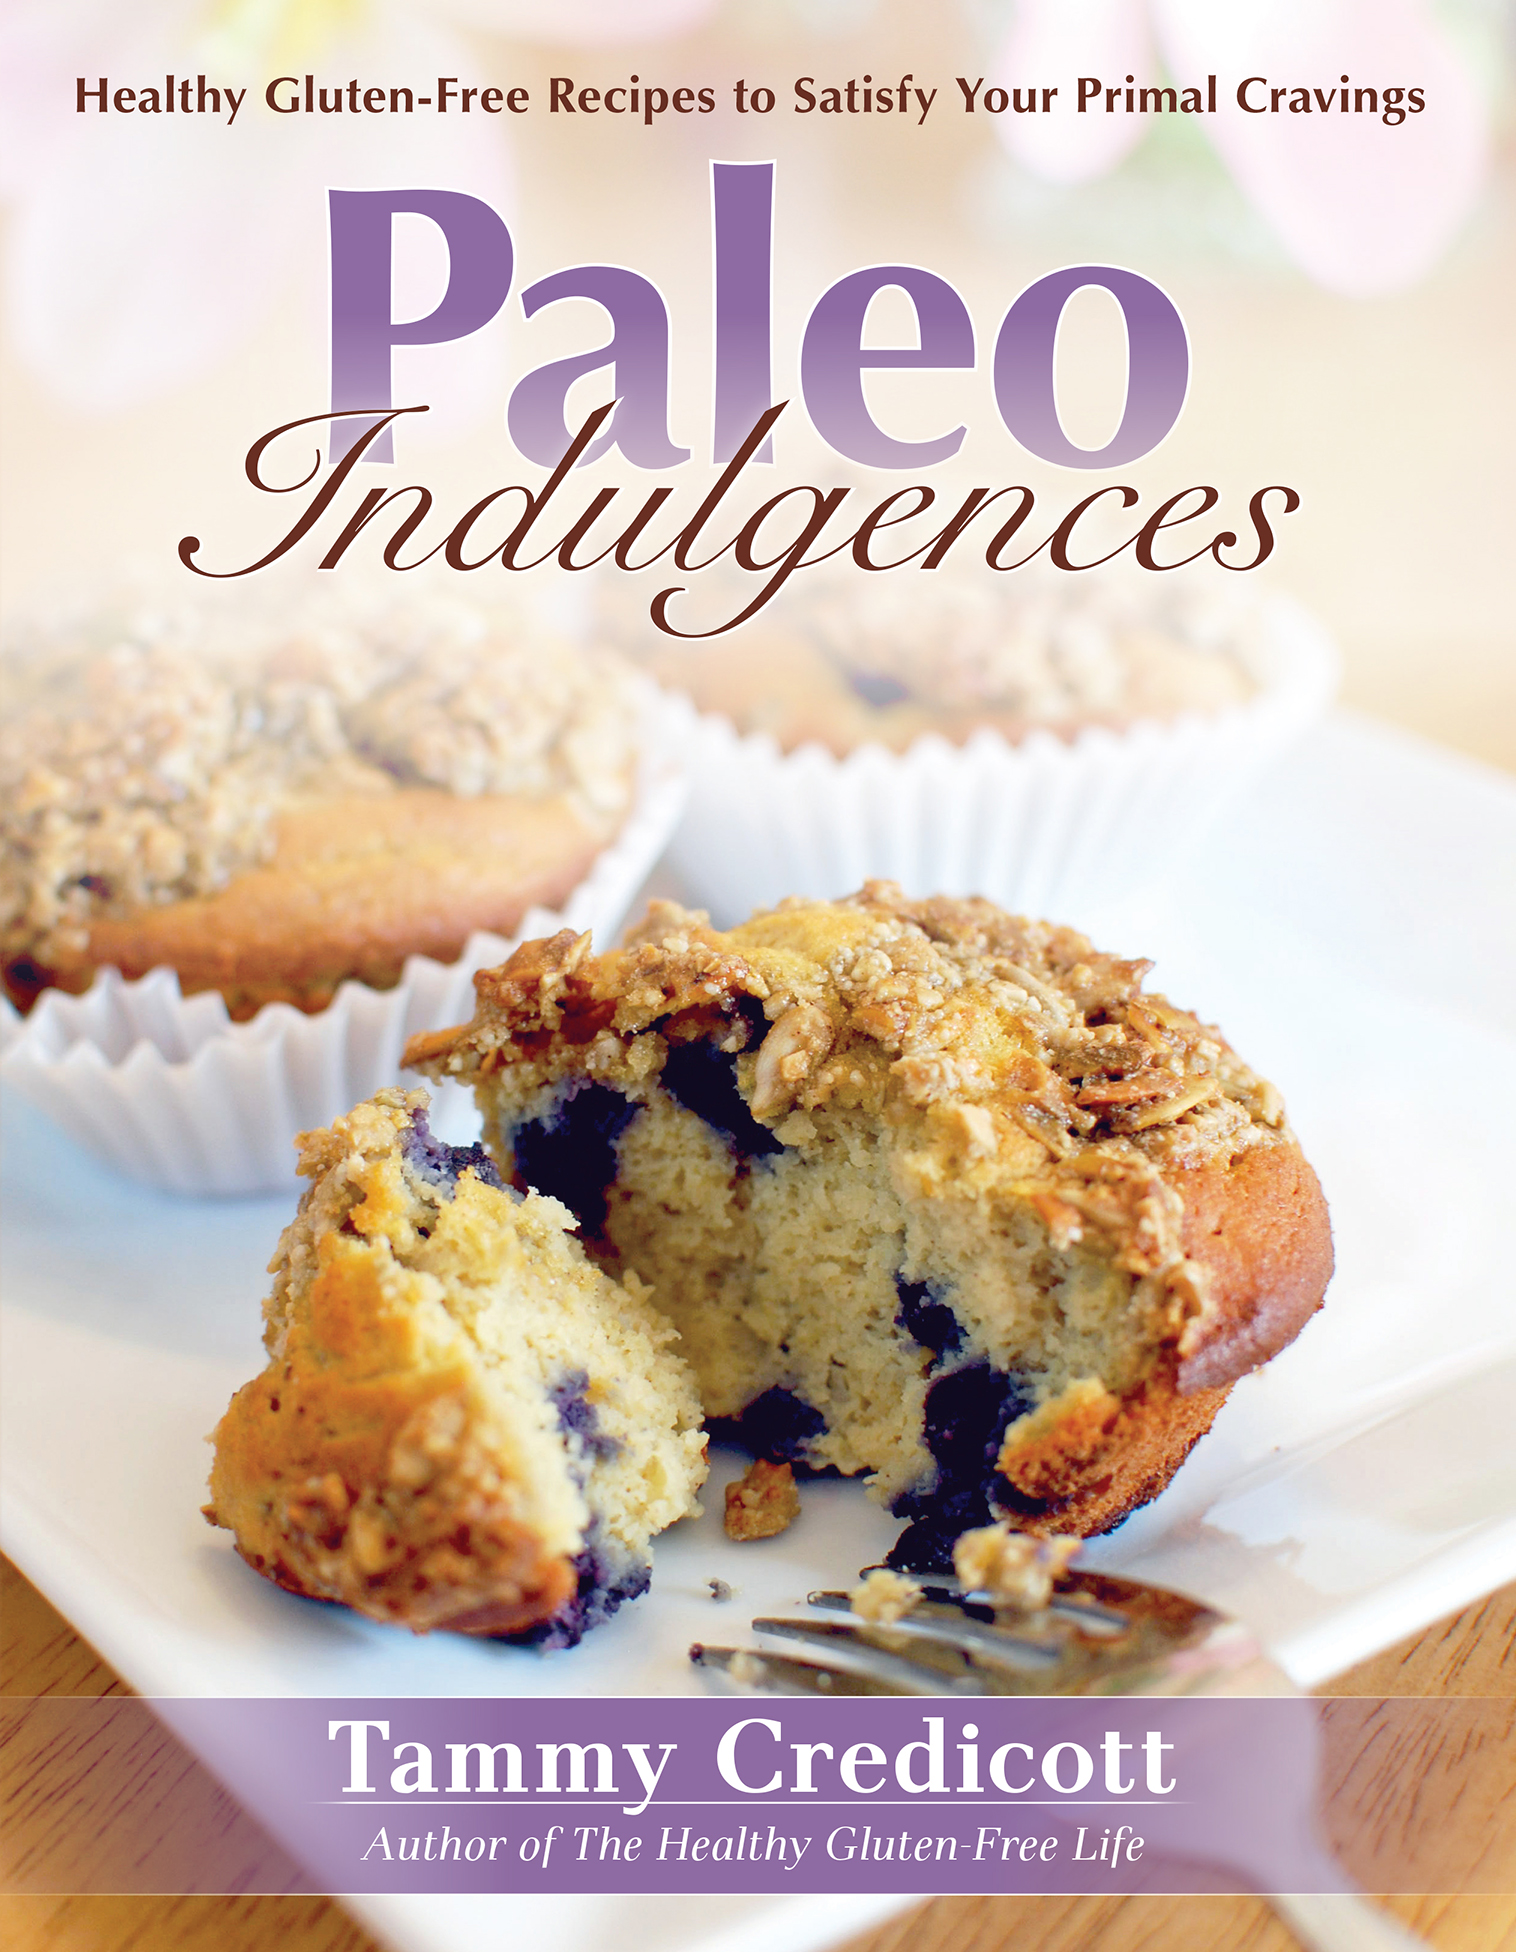 Paleo Indulgences: Healthy Gluten-Free Recipes to Satisfy Your Primal Cravings By: Tammy Credicott